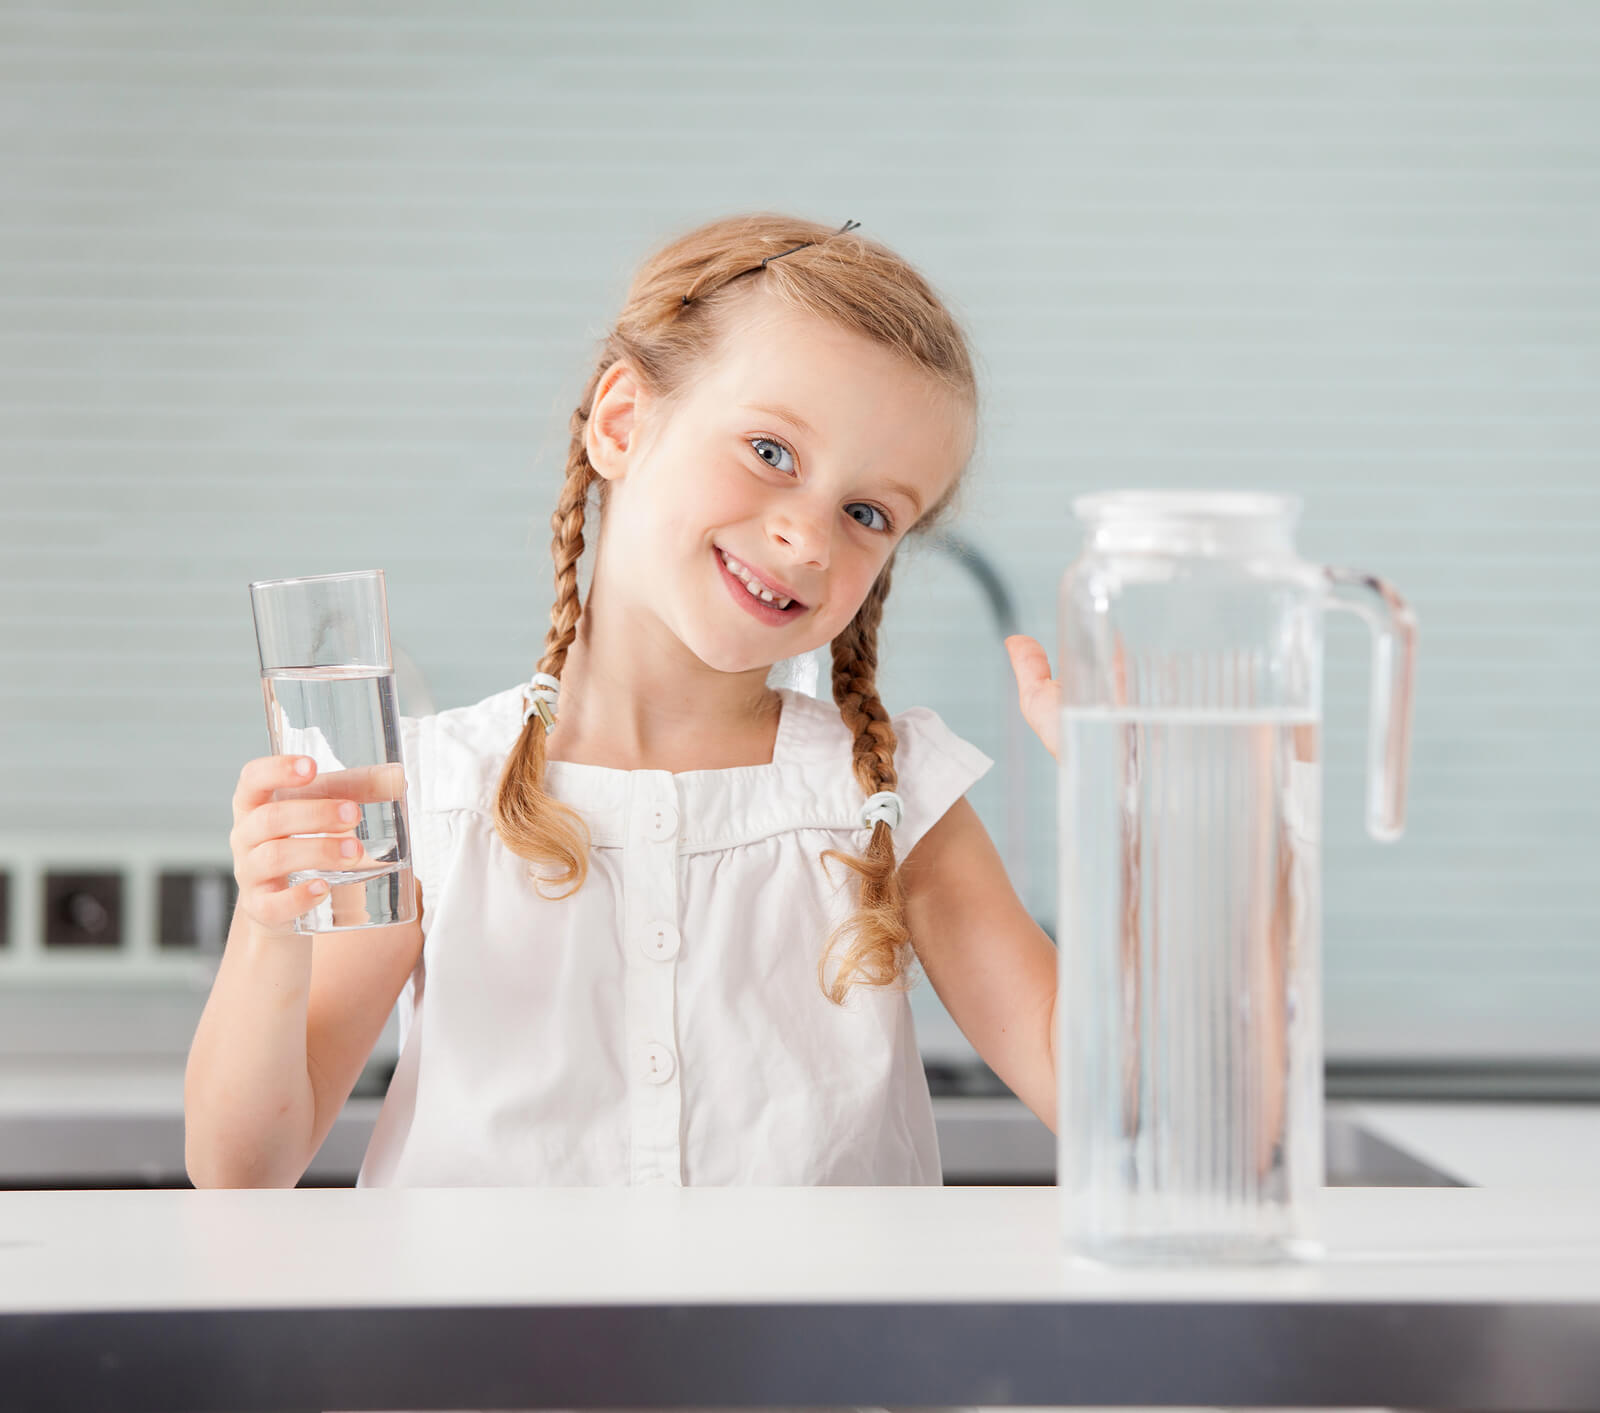 bigstock Child drinking water from glas 282220516